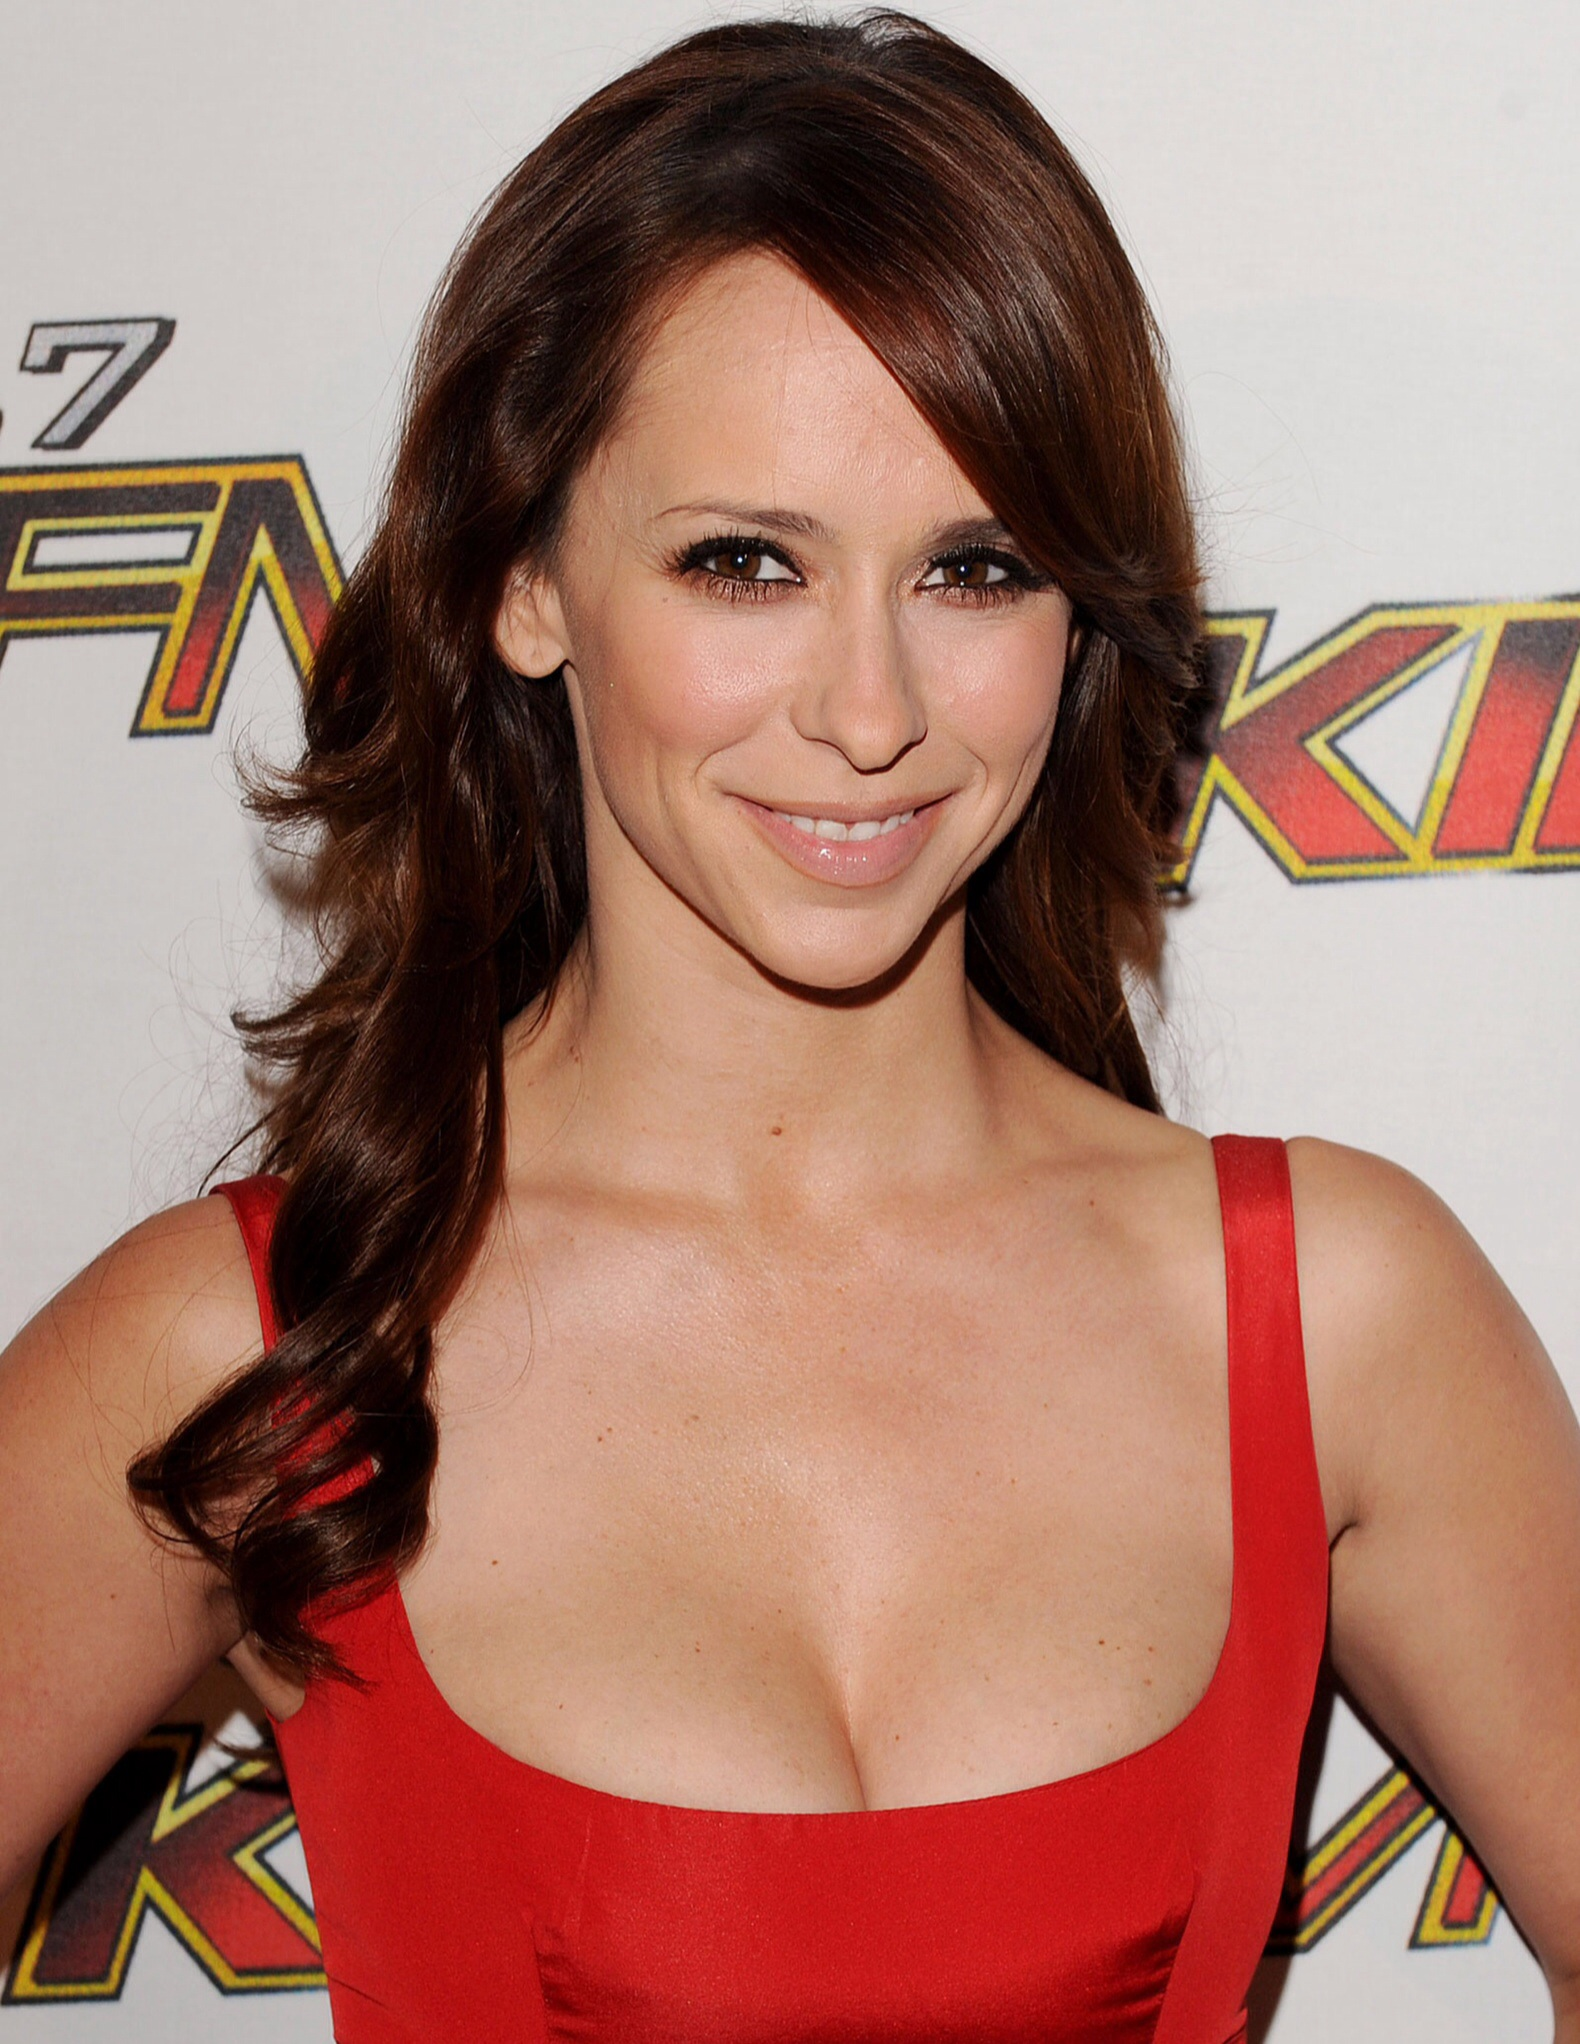 Jennifer Love Hewitt nude (82 photo), Tits, Is a cute, Selfie, bra 2006